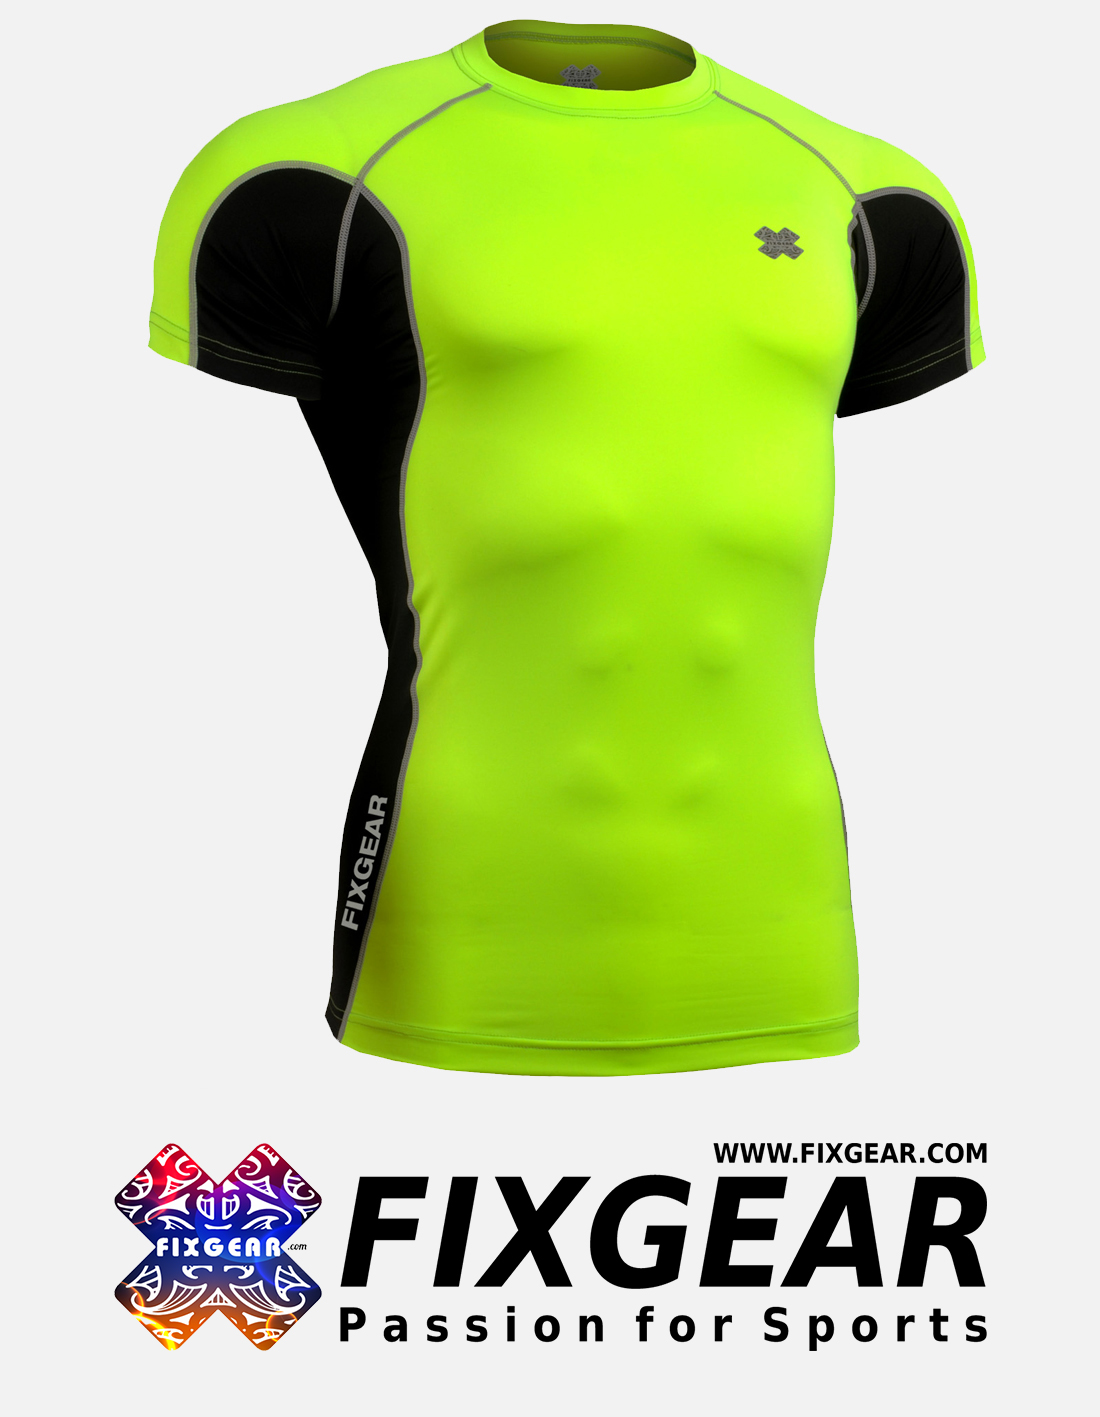 FIXGEAR FCTR-BGS Skin-tight Compression Base Layer Shirt